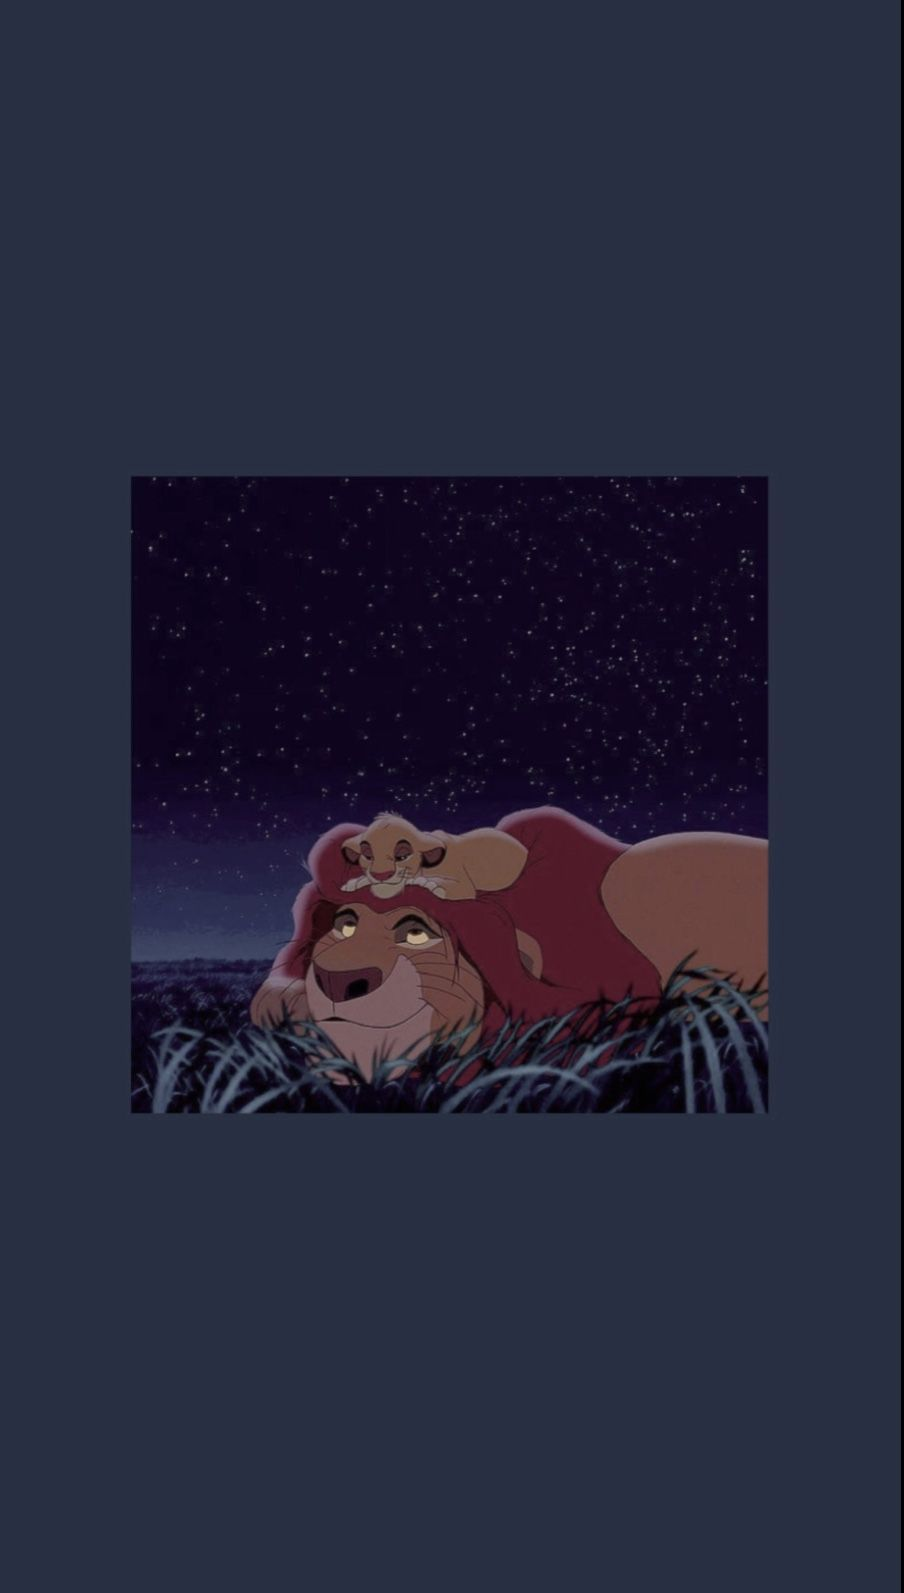 lion king � feel free to use!